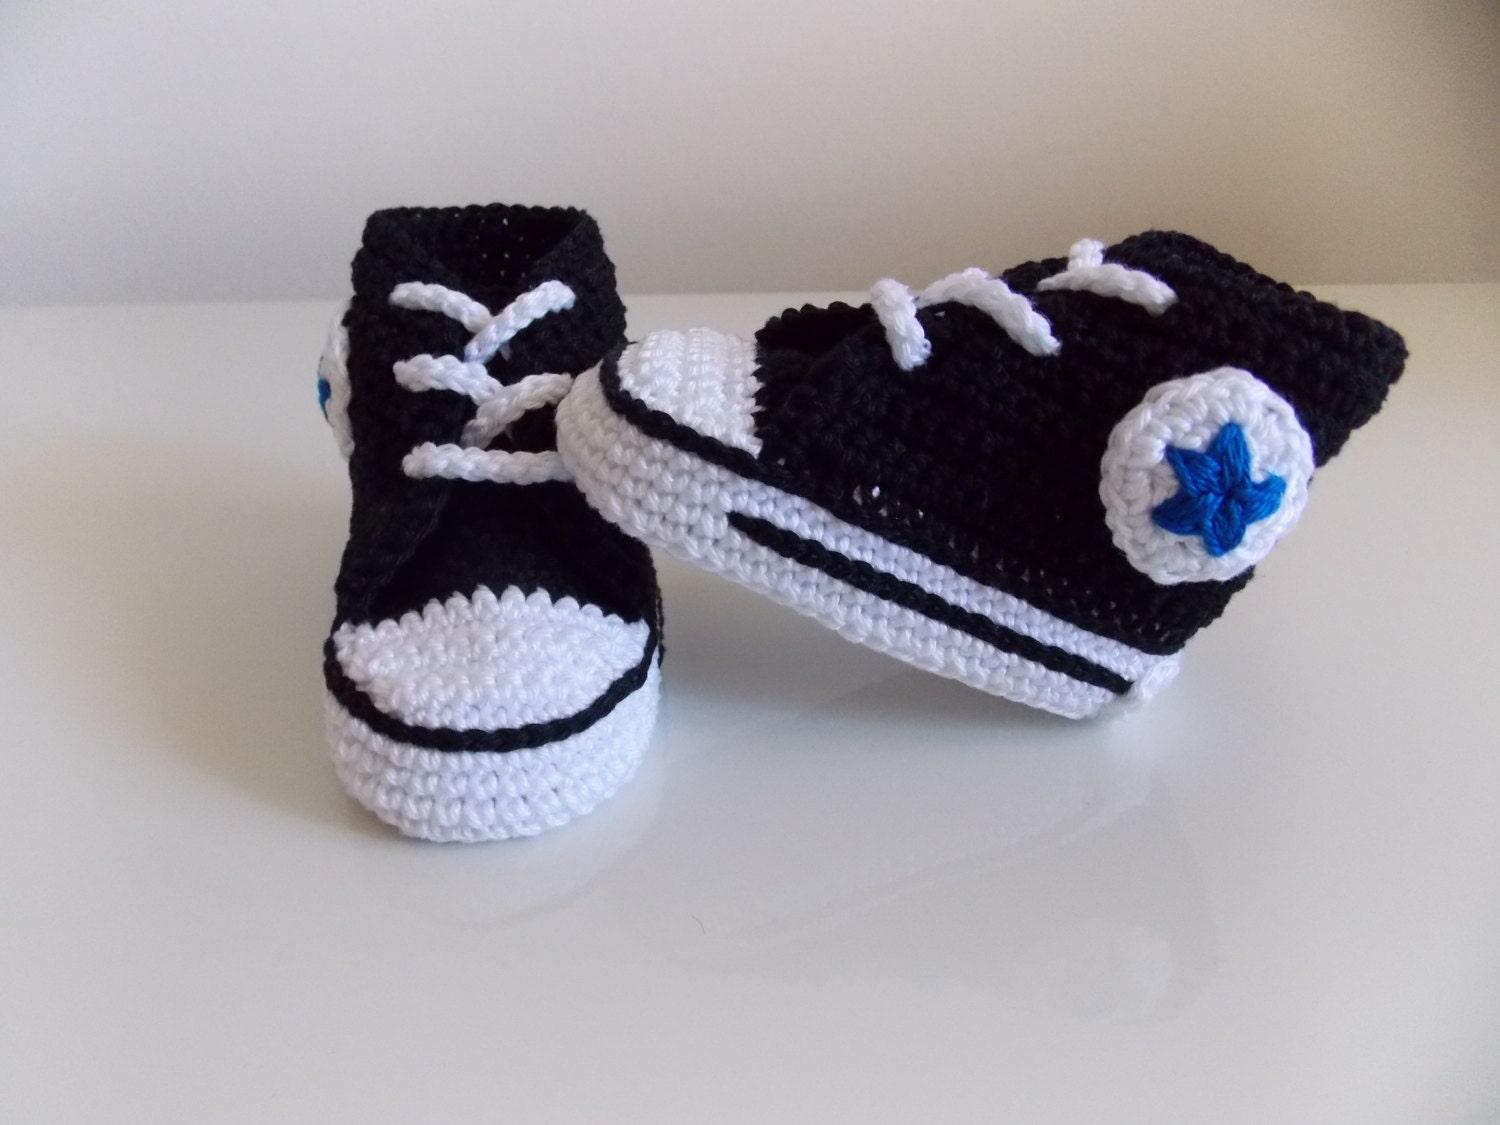 Crochet Baby Booties High Top Converse Style Pattern : Baby crochet converse newborn sneakers booties by ...